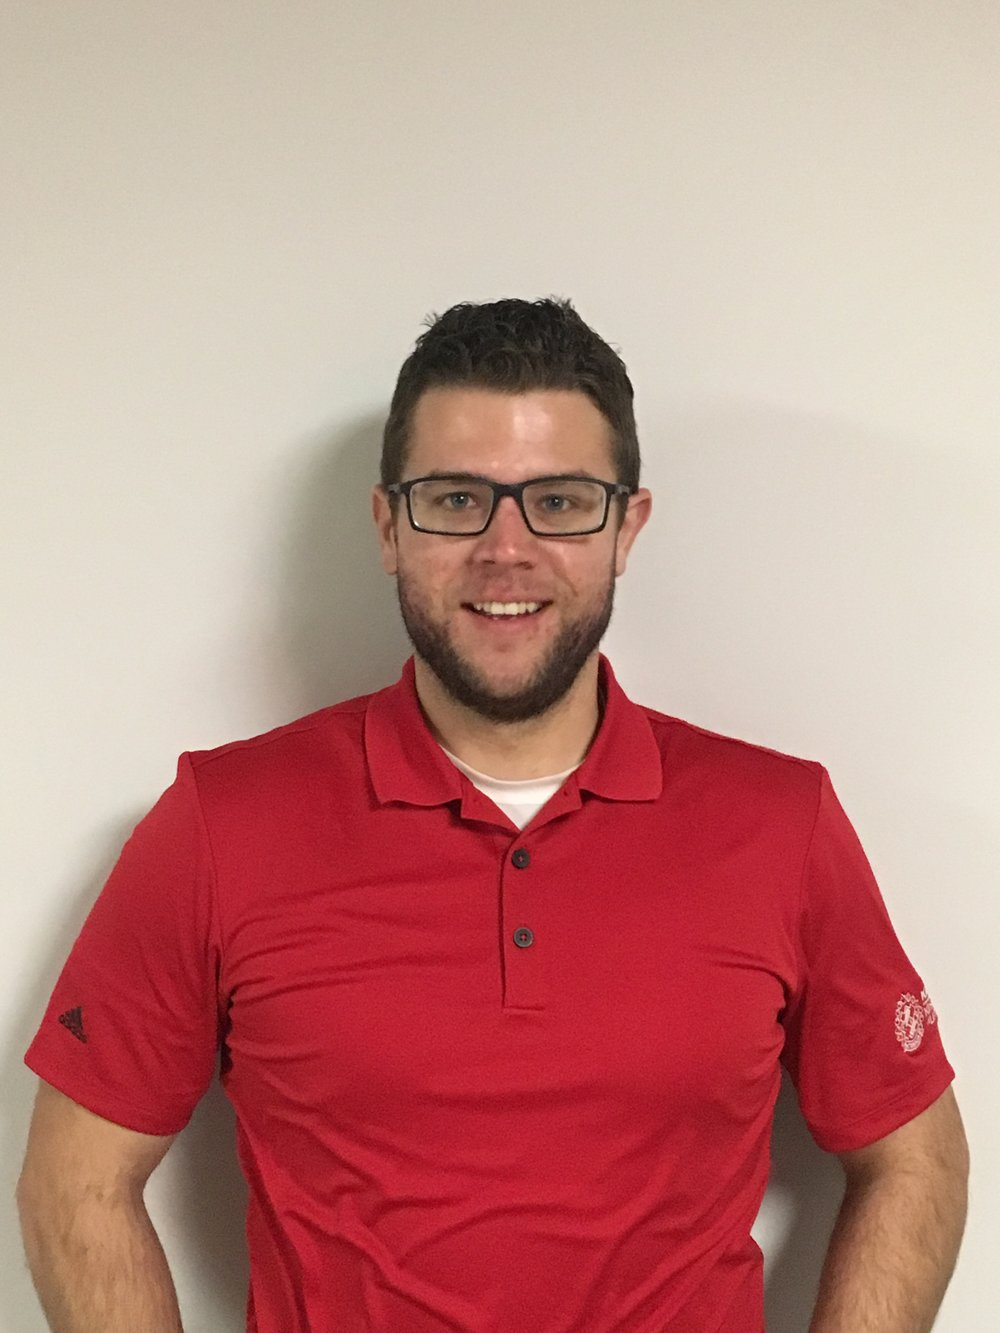 Kurt Forrest General Member, 2nd year Kinsmen Sales Rep at Bowman Sales & Associates